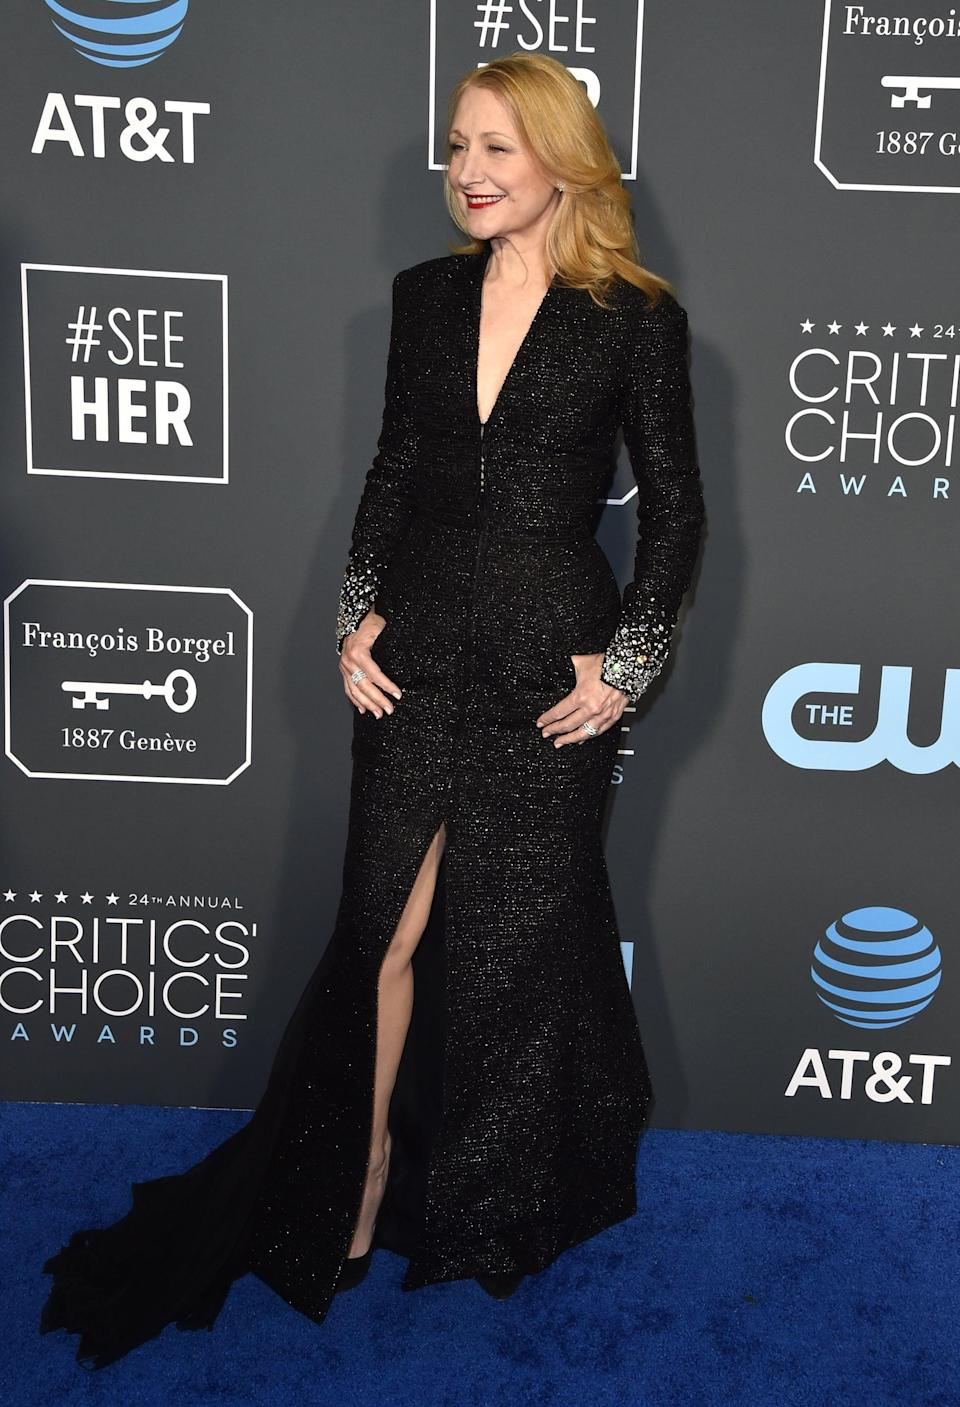 <p>Patricia Clarkson wearing a black Georges Chakra Couture gown and Casadei heels.</p>